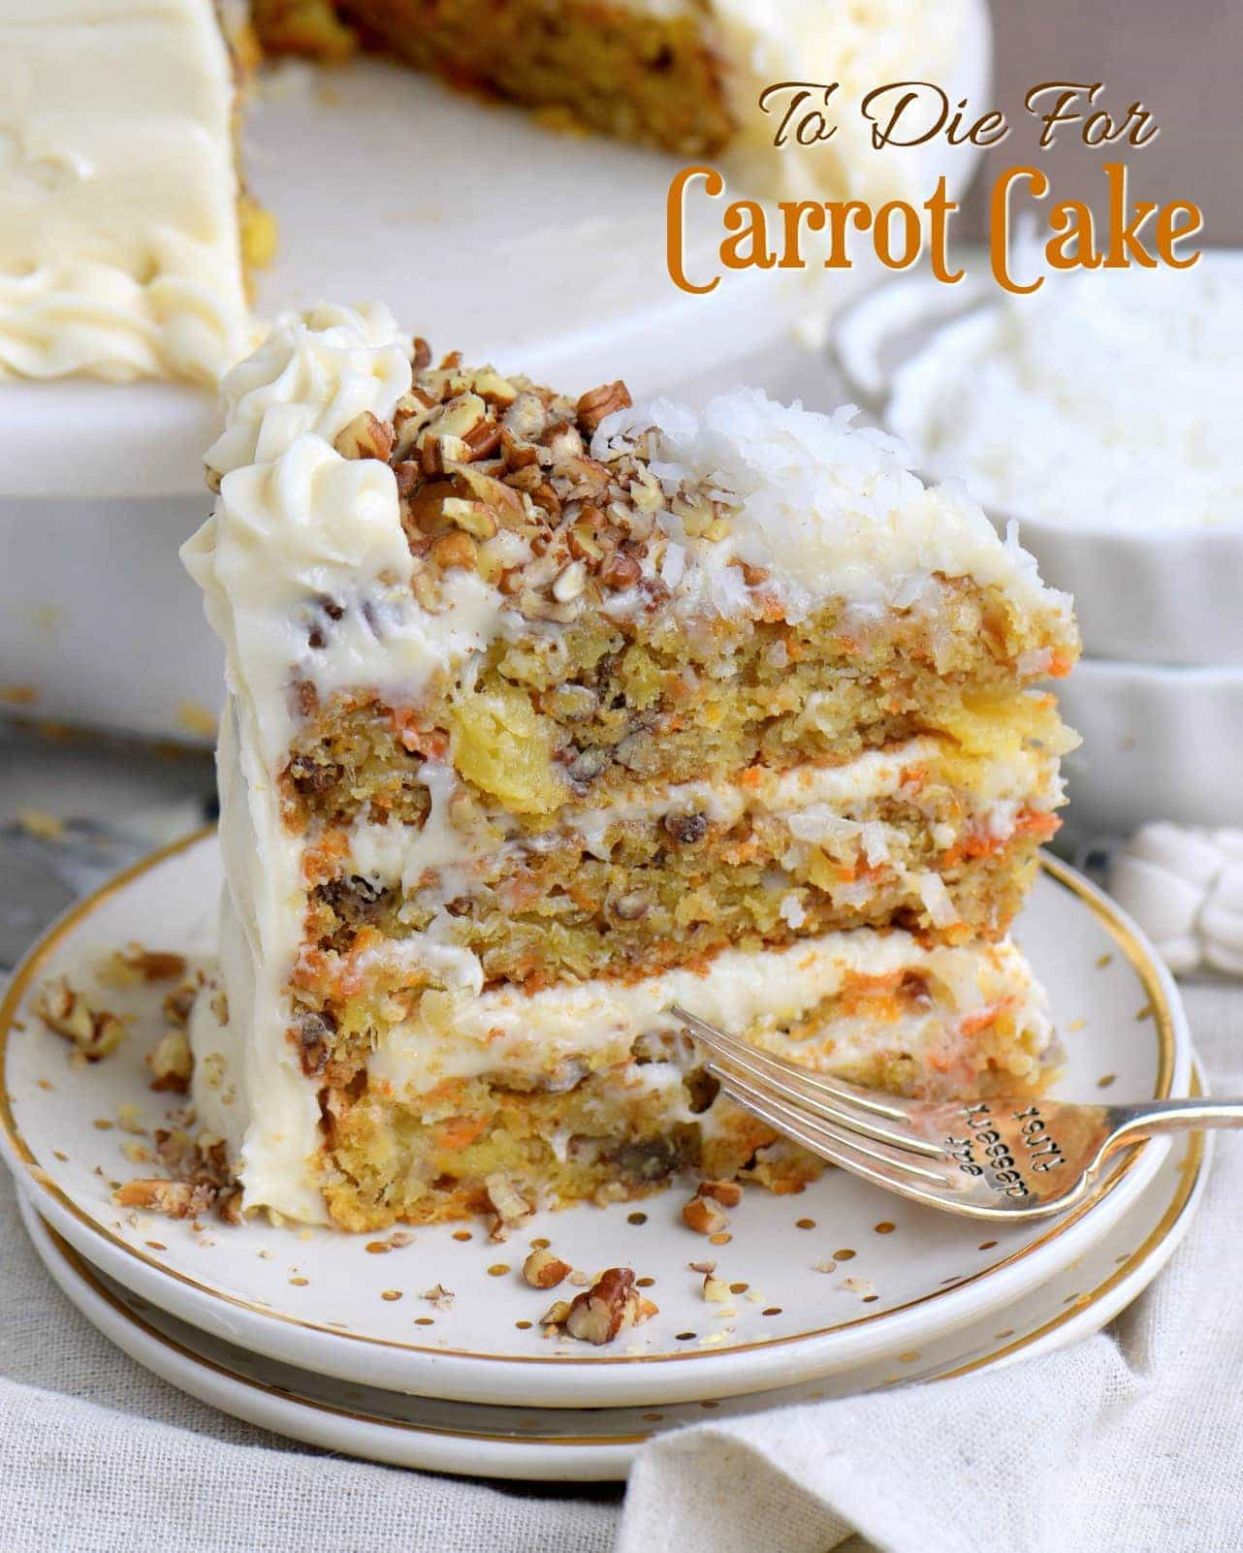 To Die For Carrot Cake - Recipes Carrot Cake